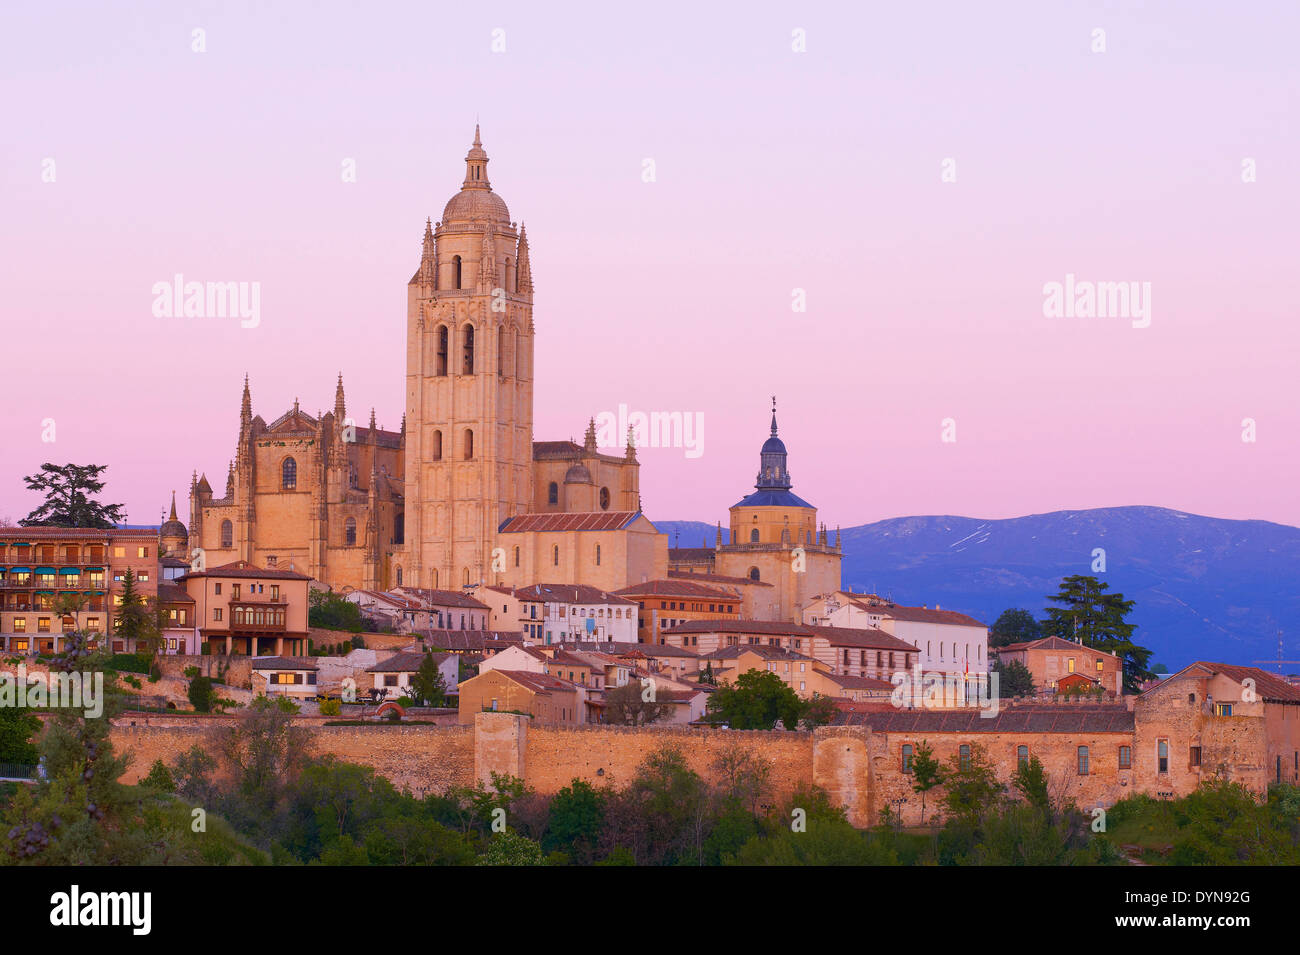 Cathedral, Segovia, Cathedral at Sunset, Castilla-Leon, Spain - Stock Image